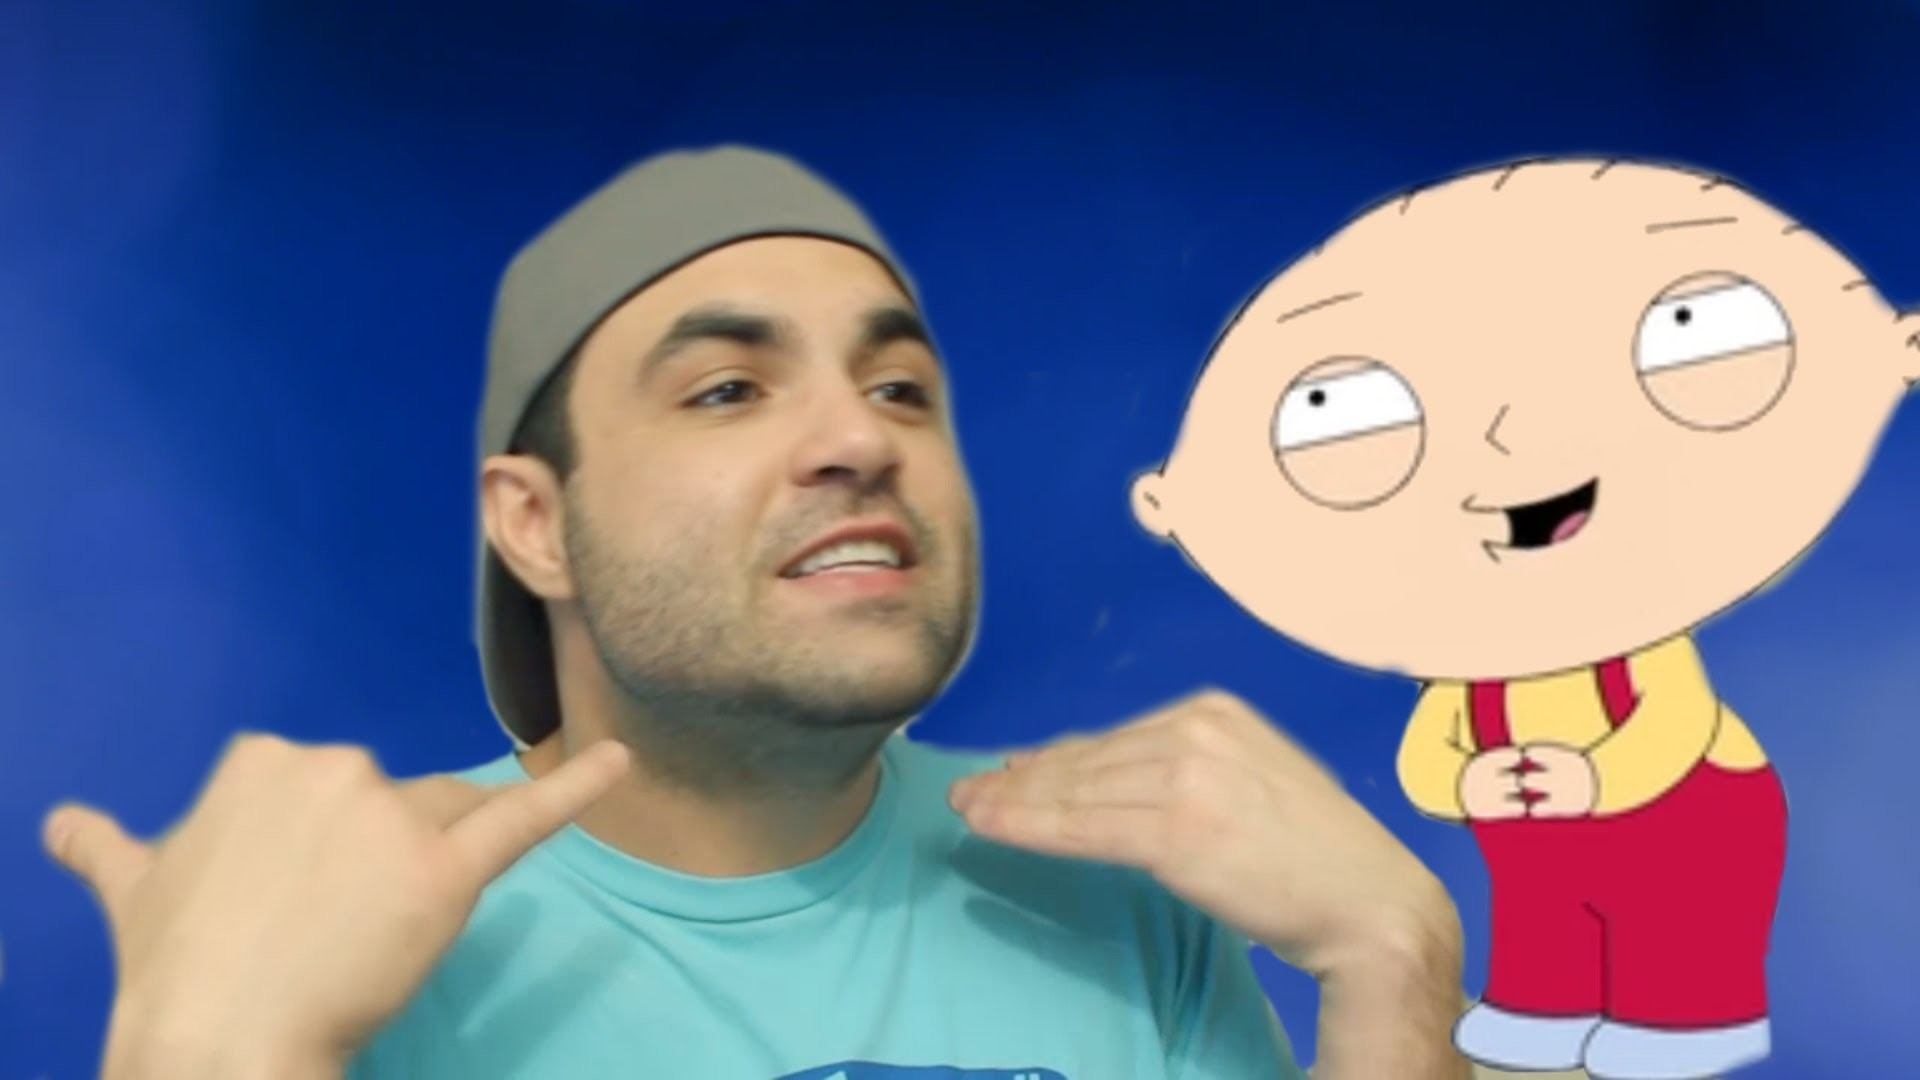 HOW TO do Family Guy Voices